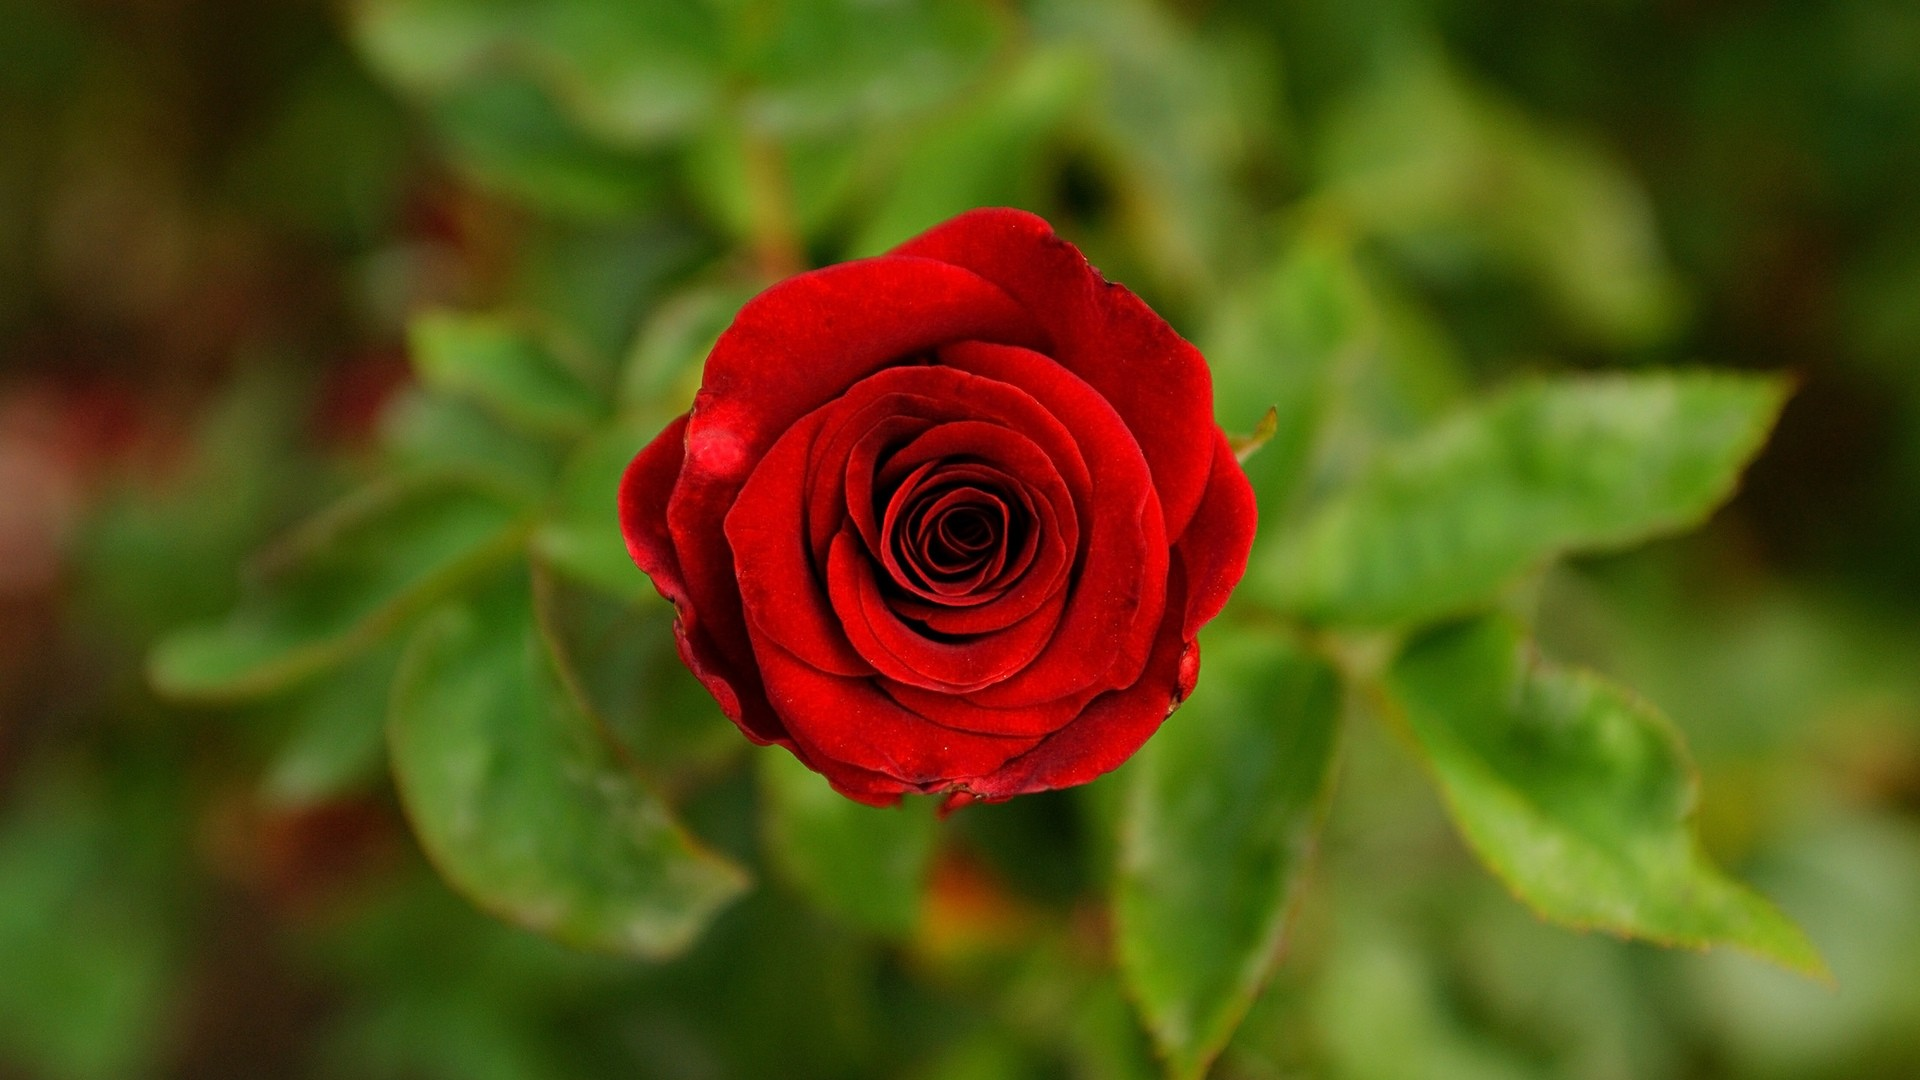 Red Rose High Quality